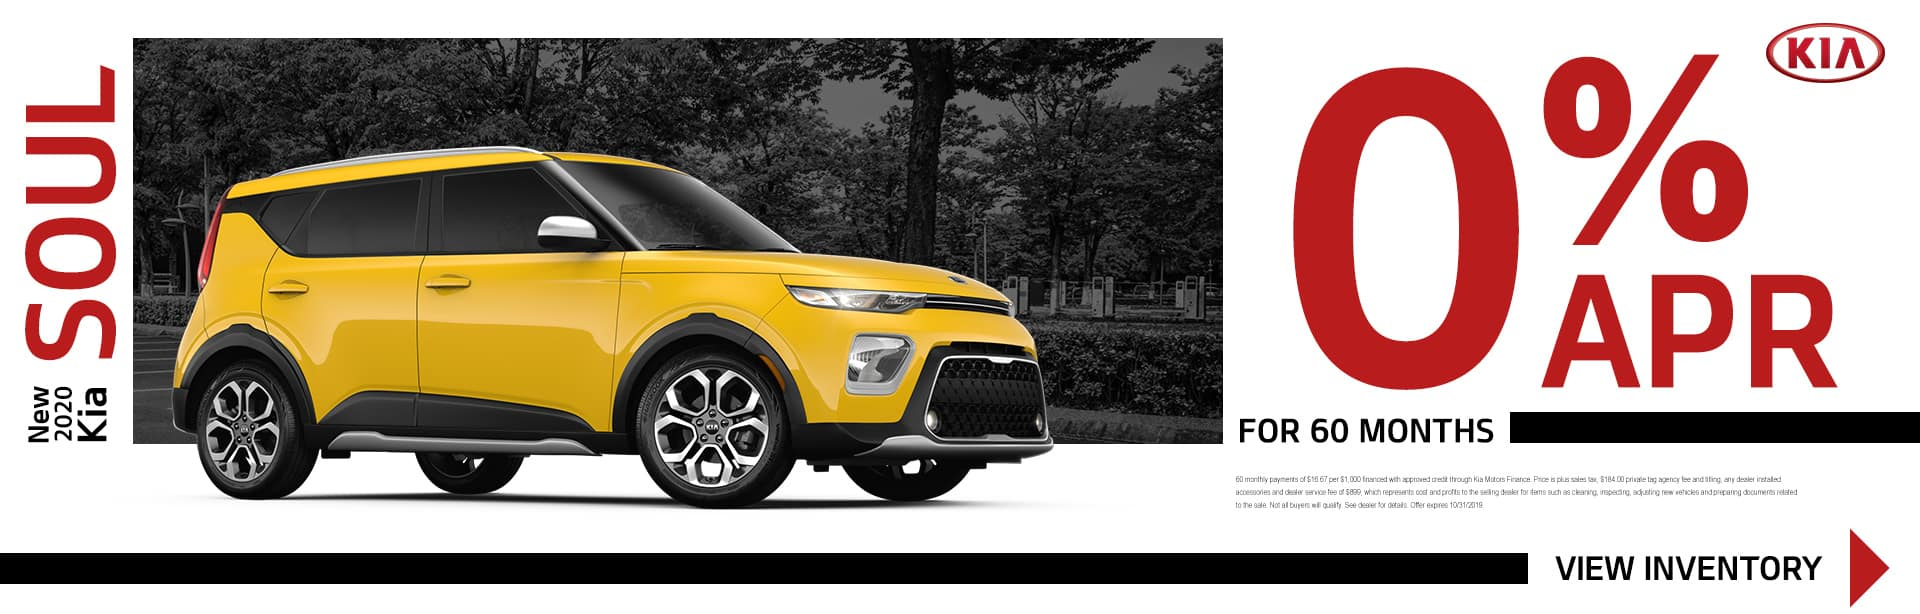 New 2020 Kia Soul | 0% APR For 60 Months